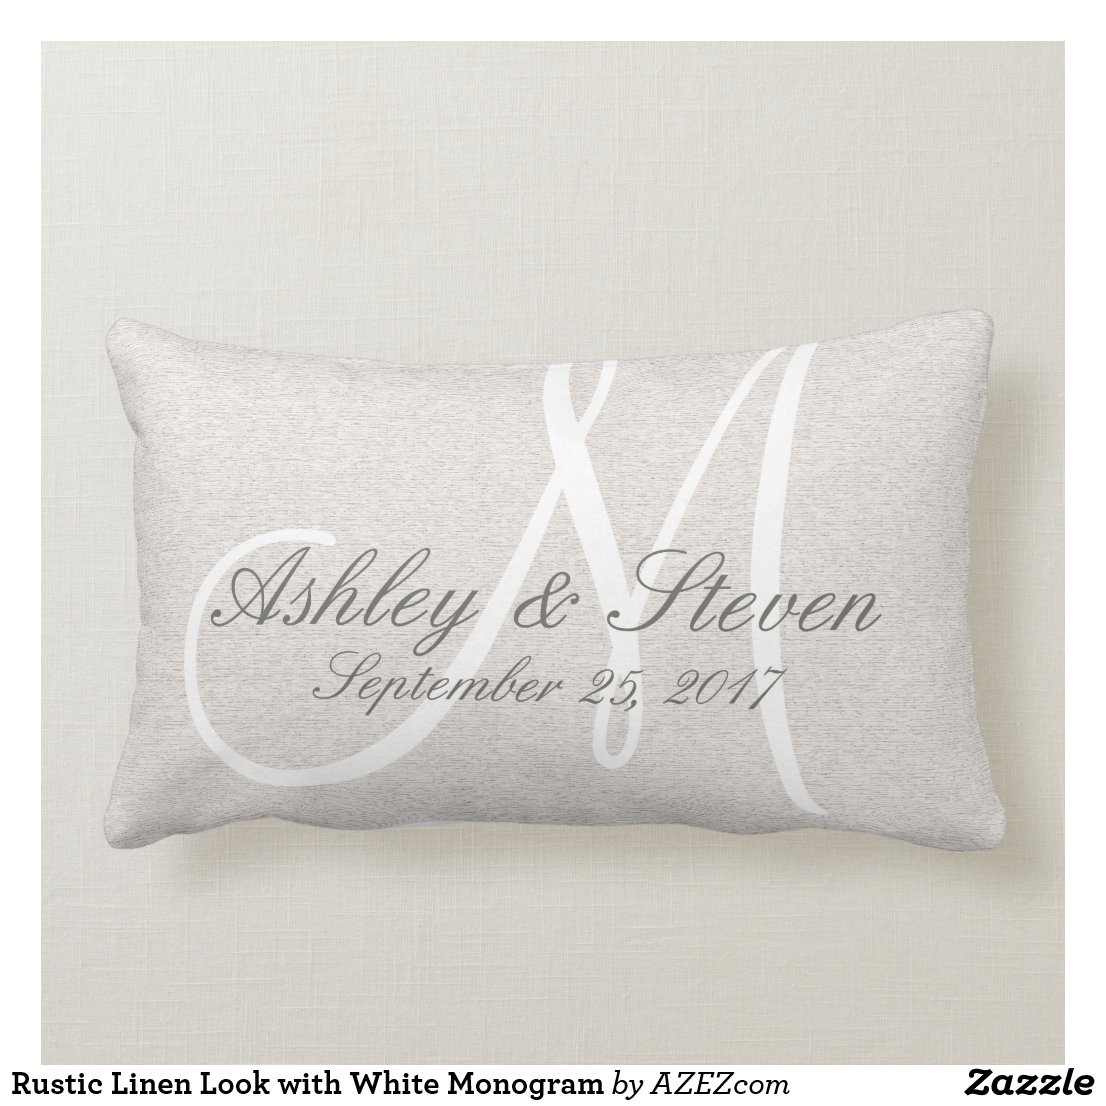 Rustic Linen Look with White Monogram Cushion